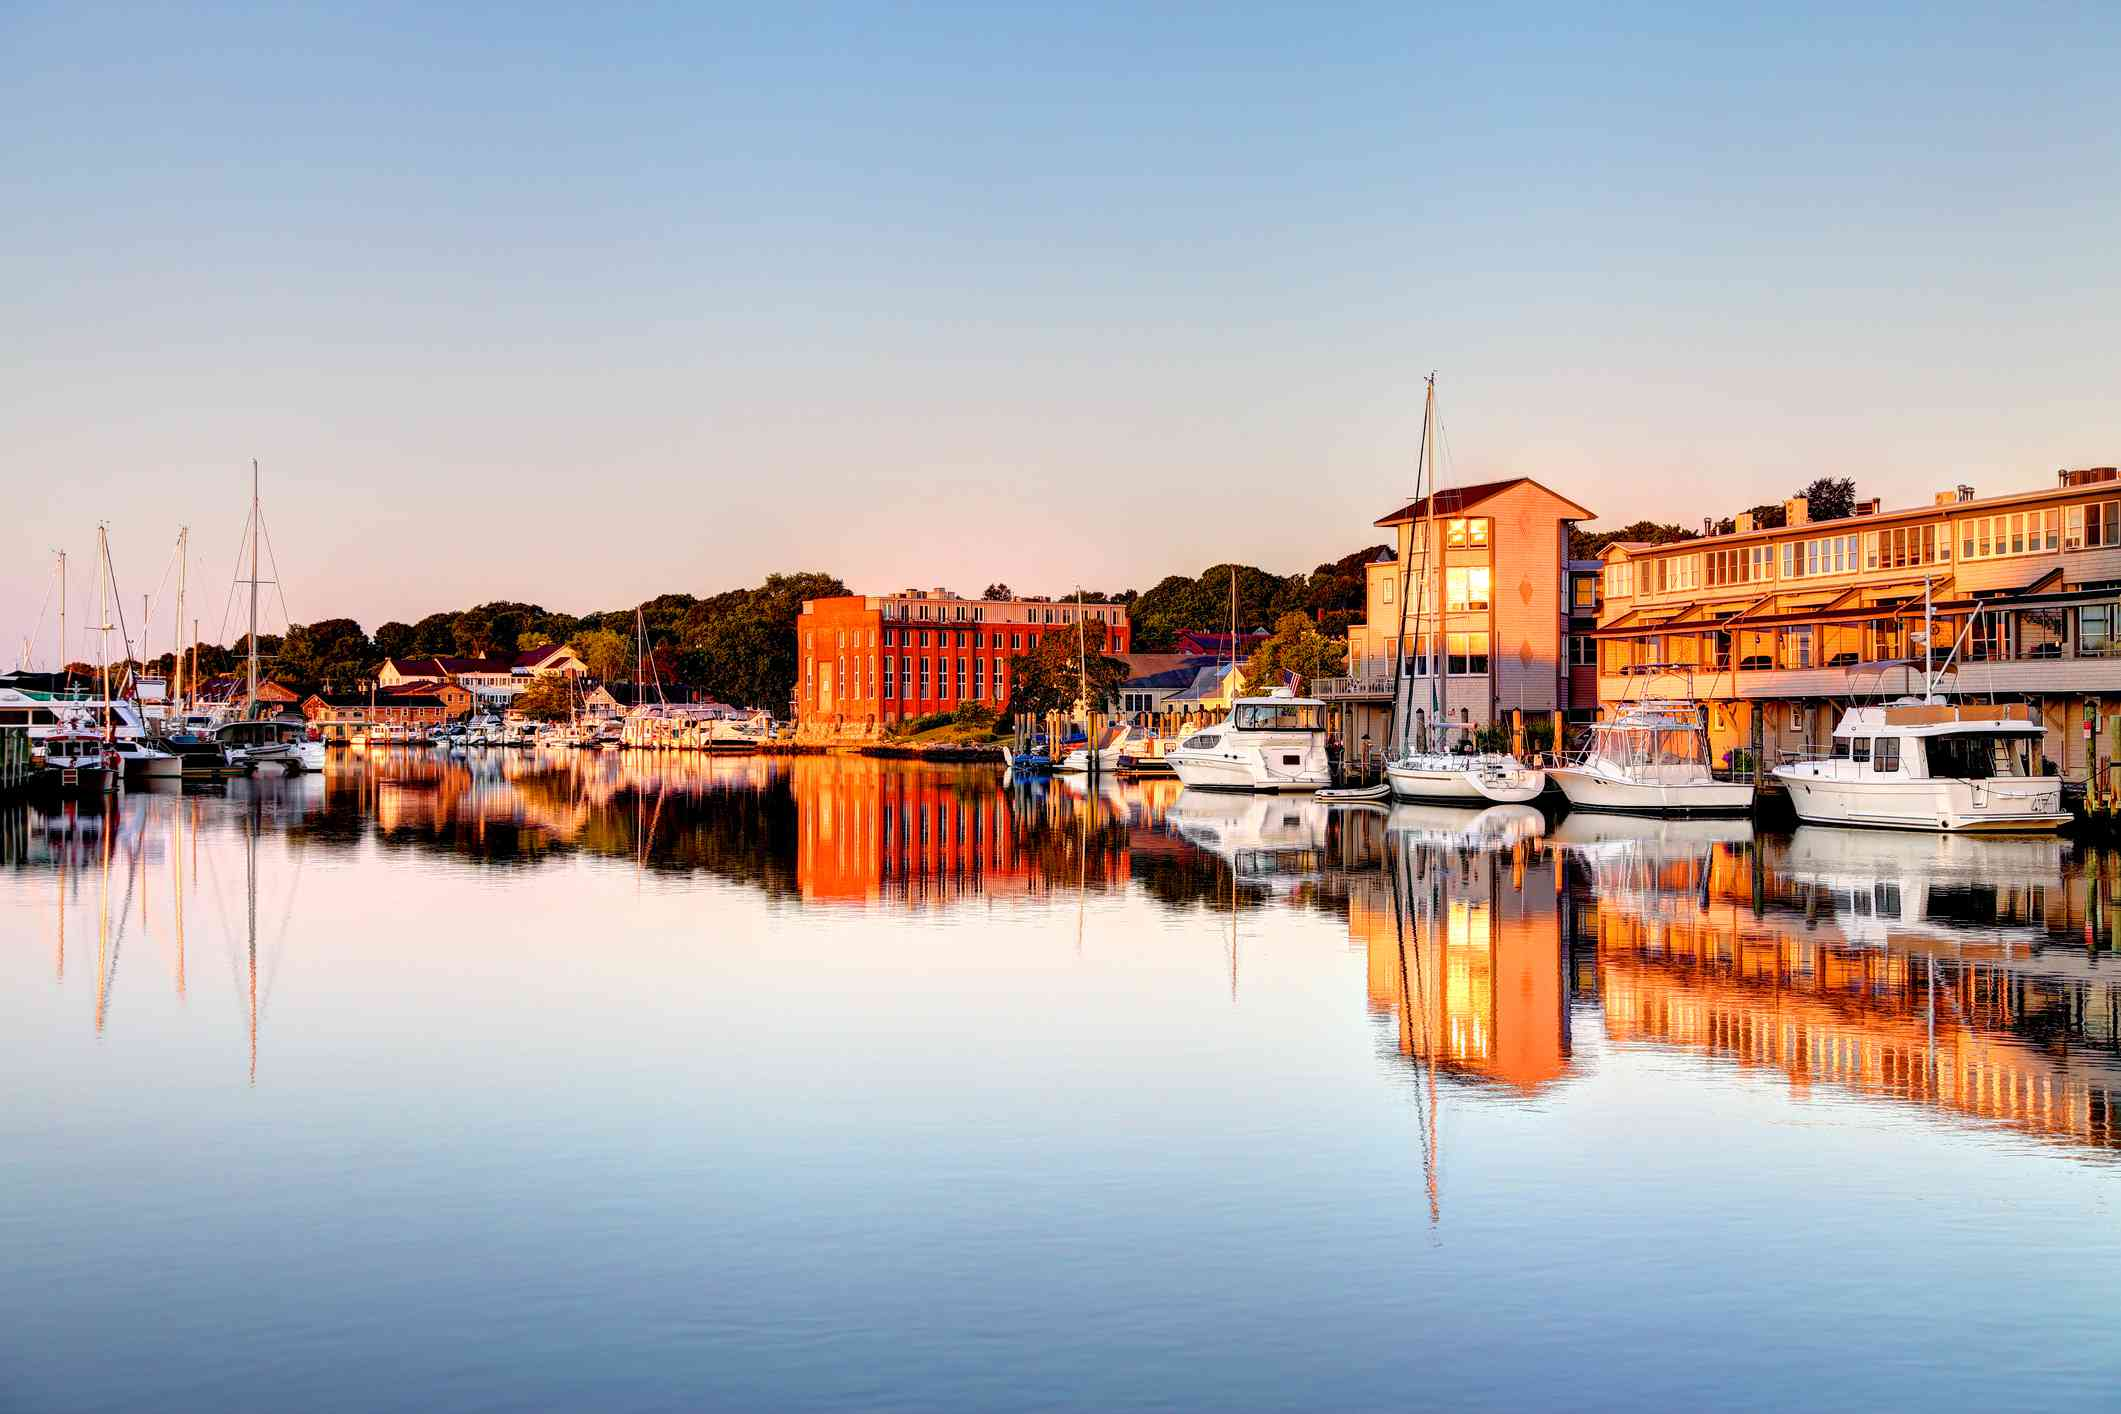 houses and boats reflected on still water in Mystic, Conn.